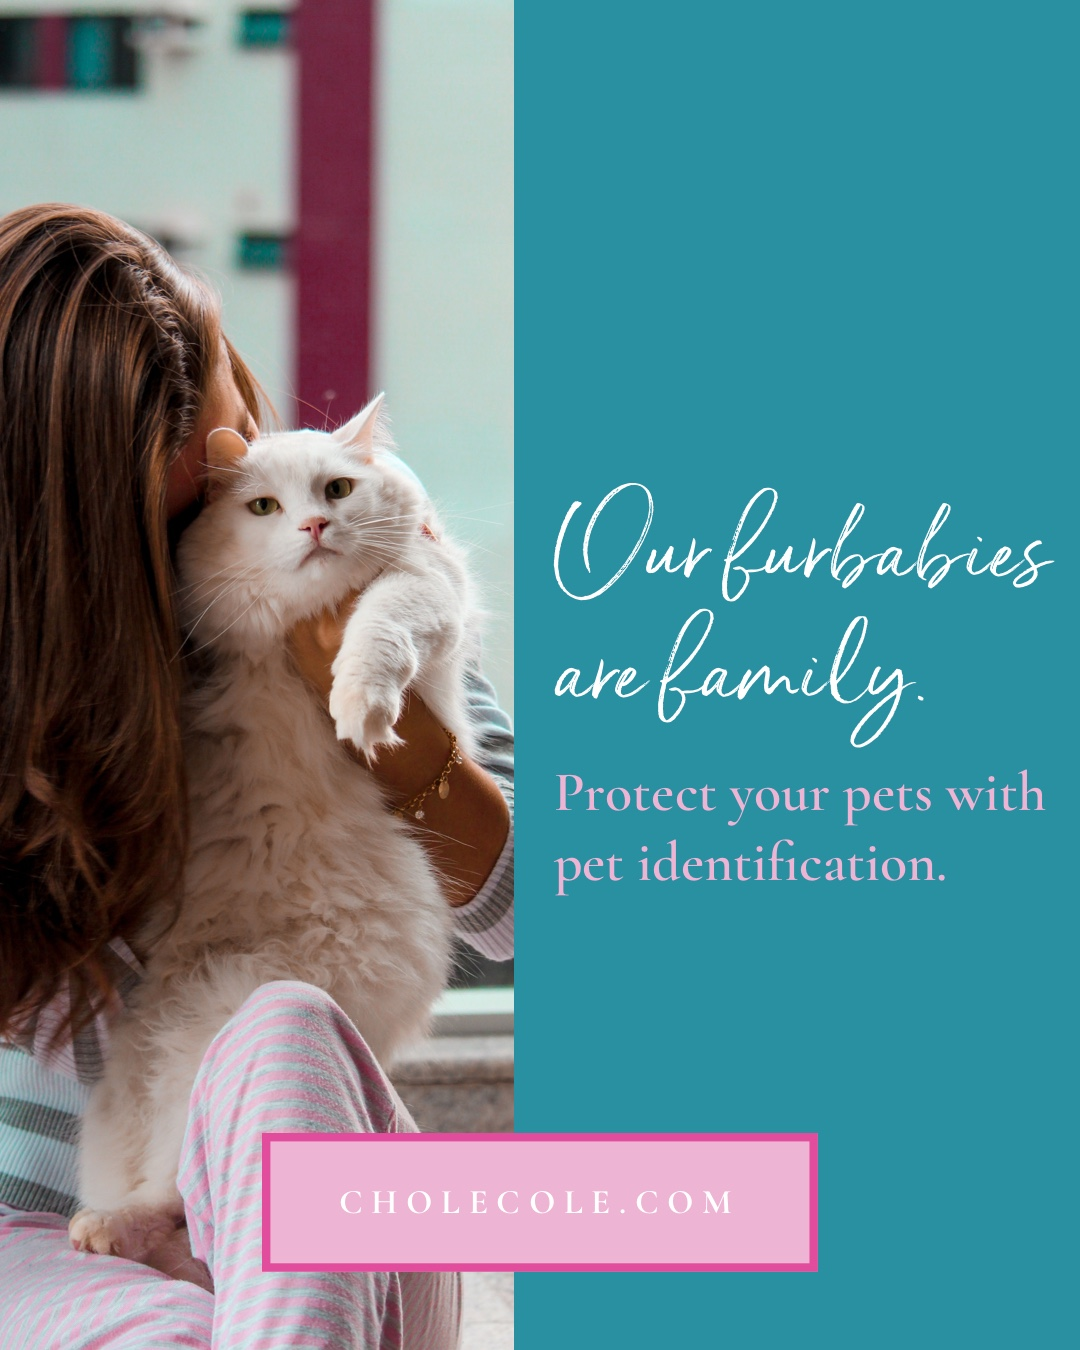 April 23rd Furbabies are Family